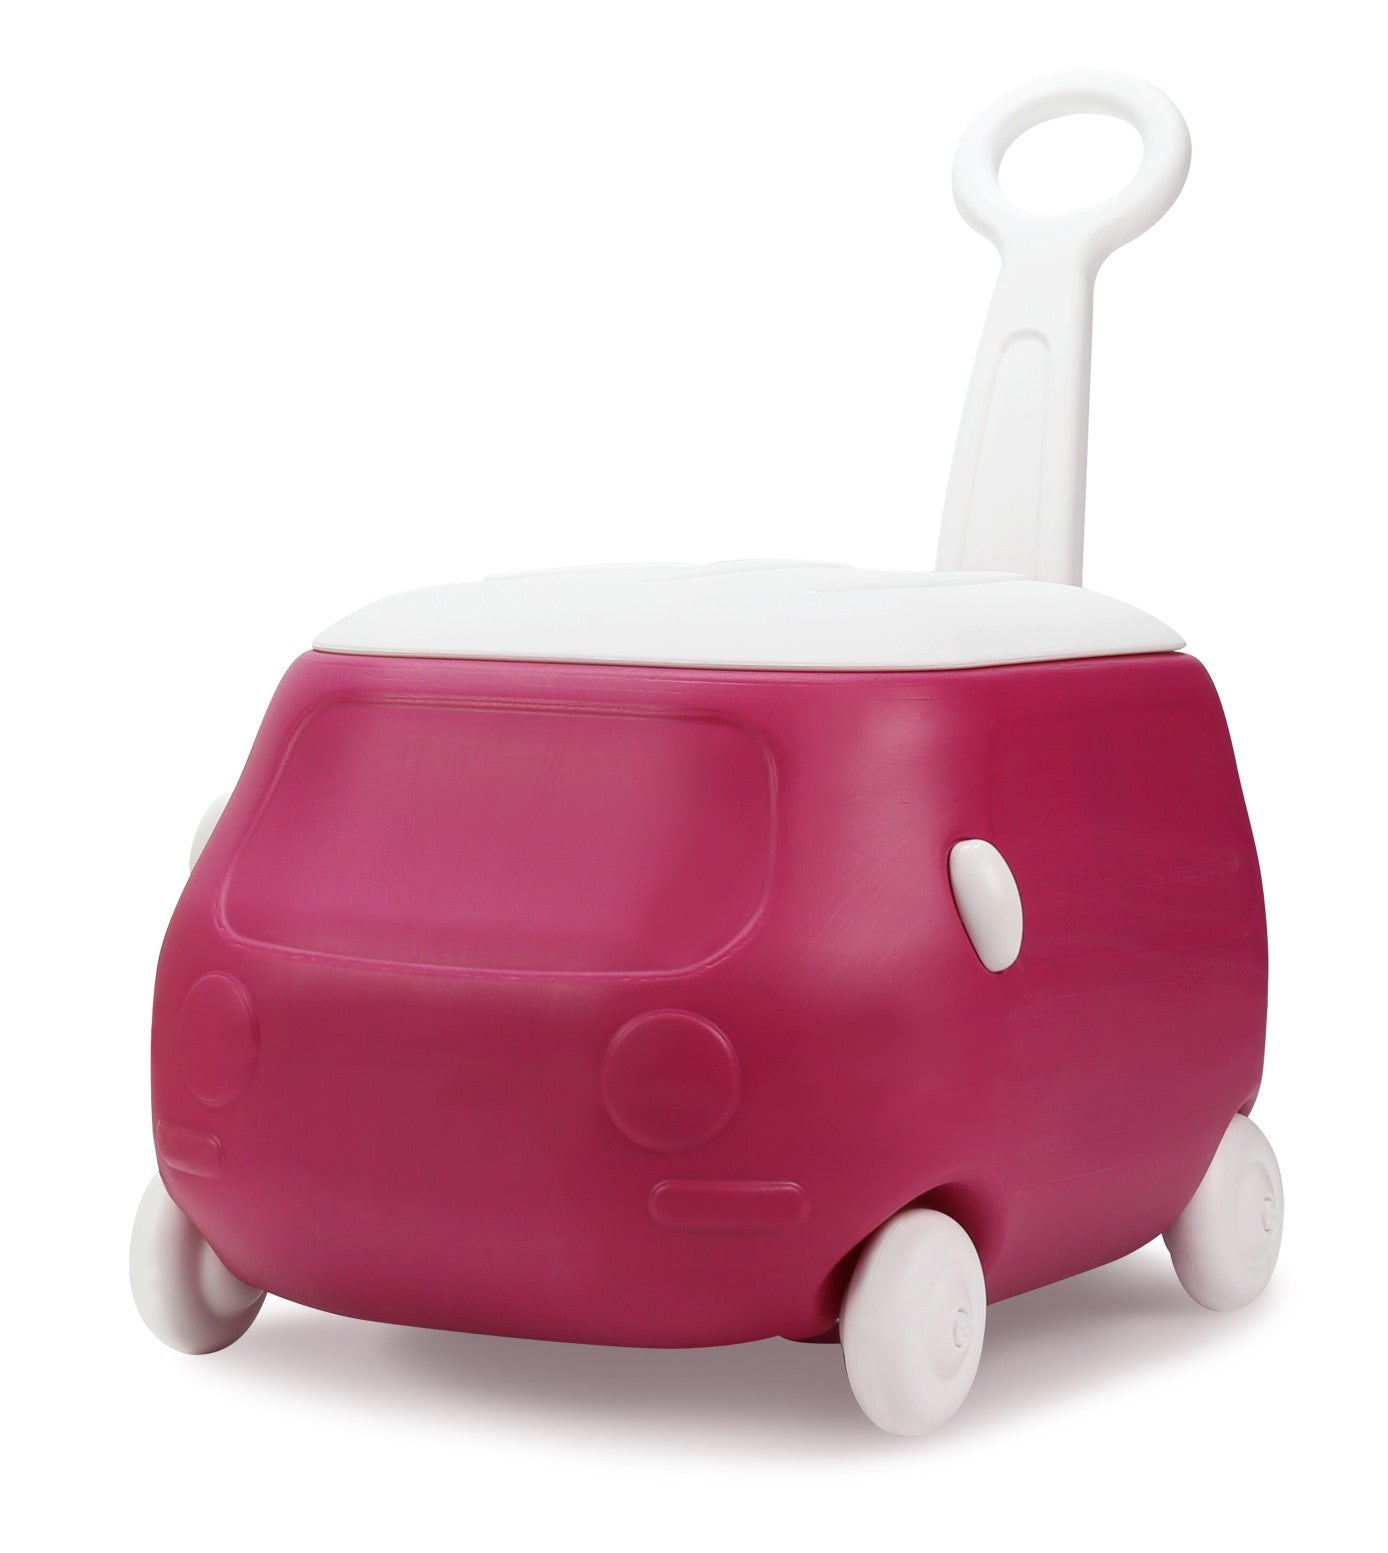 YAYA VROOM TOY BOX - Mighty Baby PH